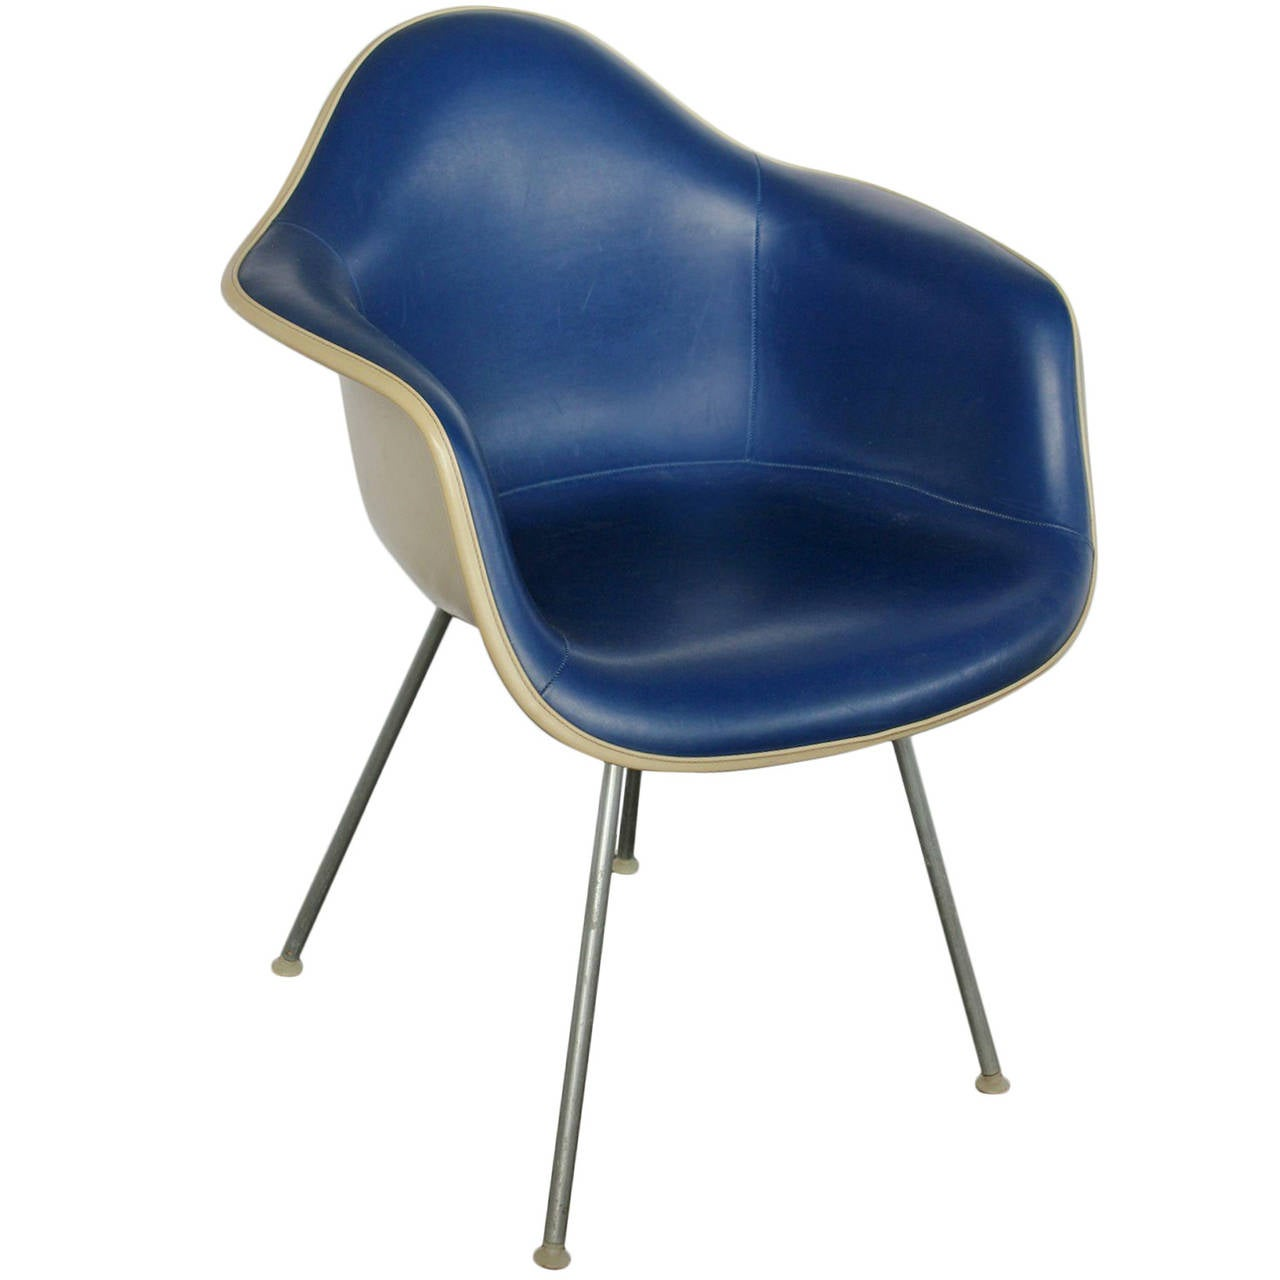 Charles And Ray Eames Chair Blue Naugahyde Chair By Charles And Ray Eames For Herman